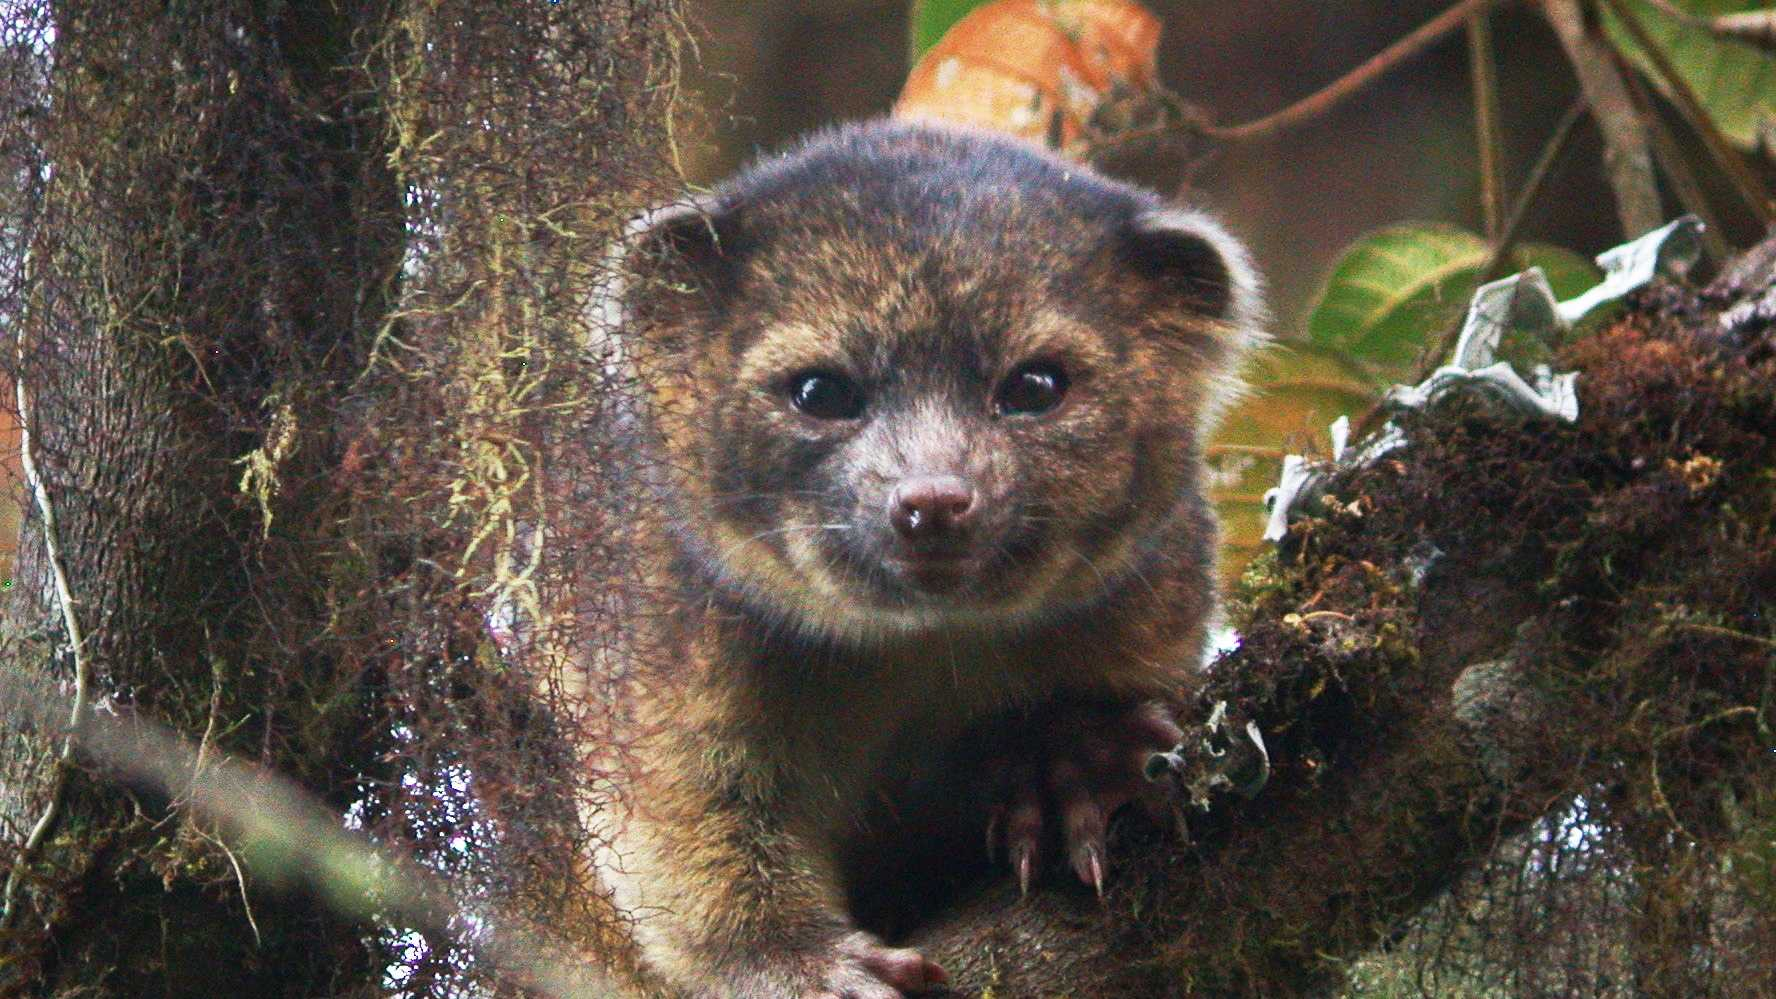 It's an olinguito!